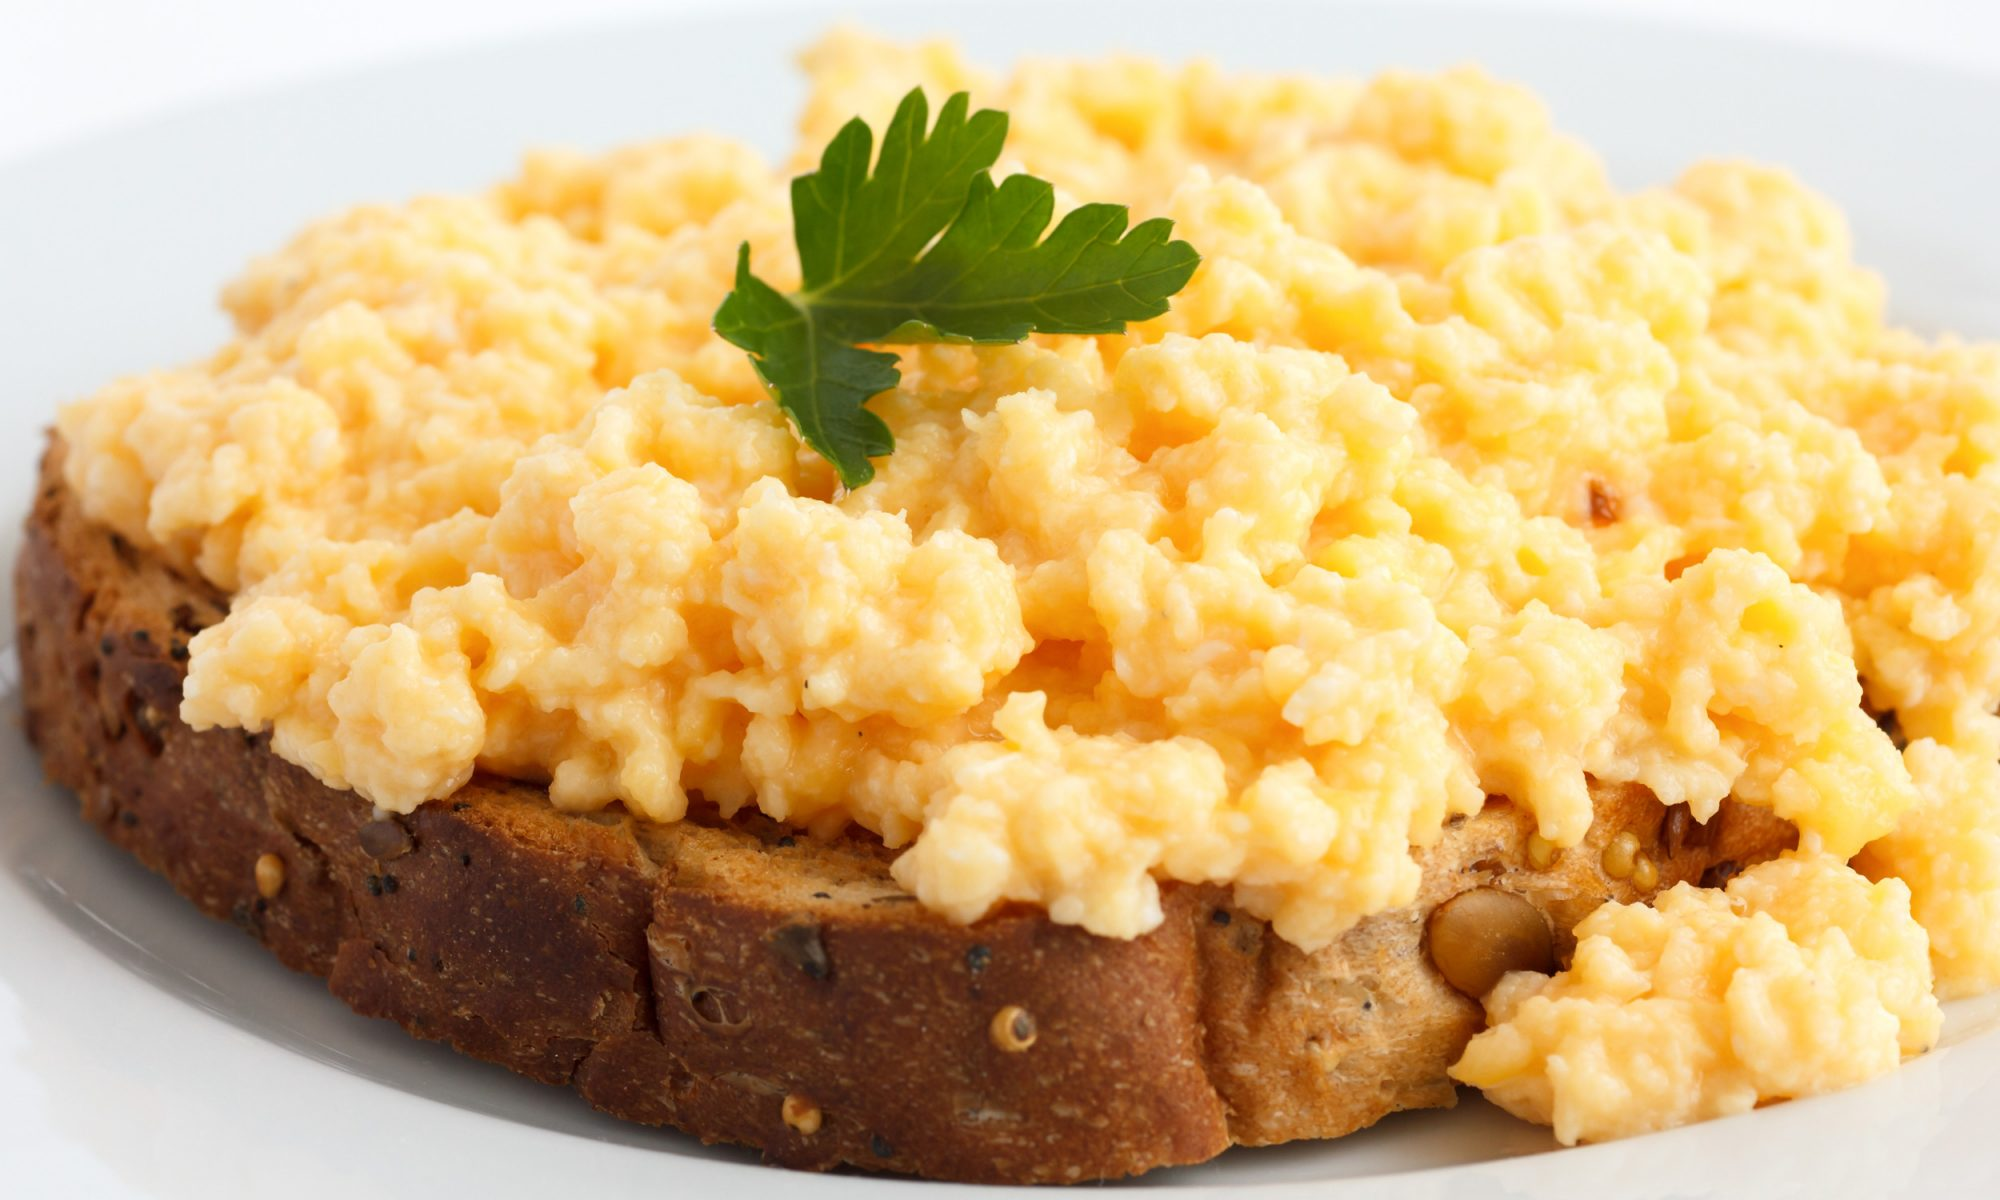 EC: How to Make Scrambled Eggs from Super-Fancy to Crazy-Quick